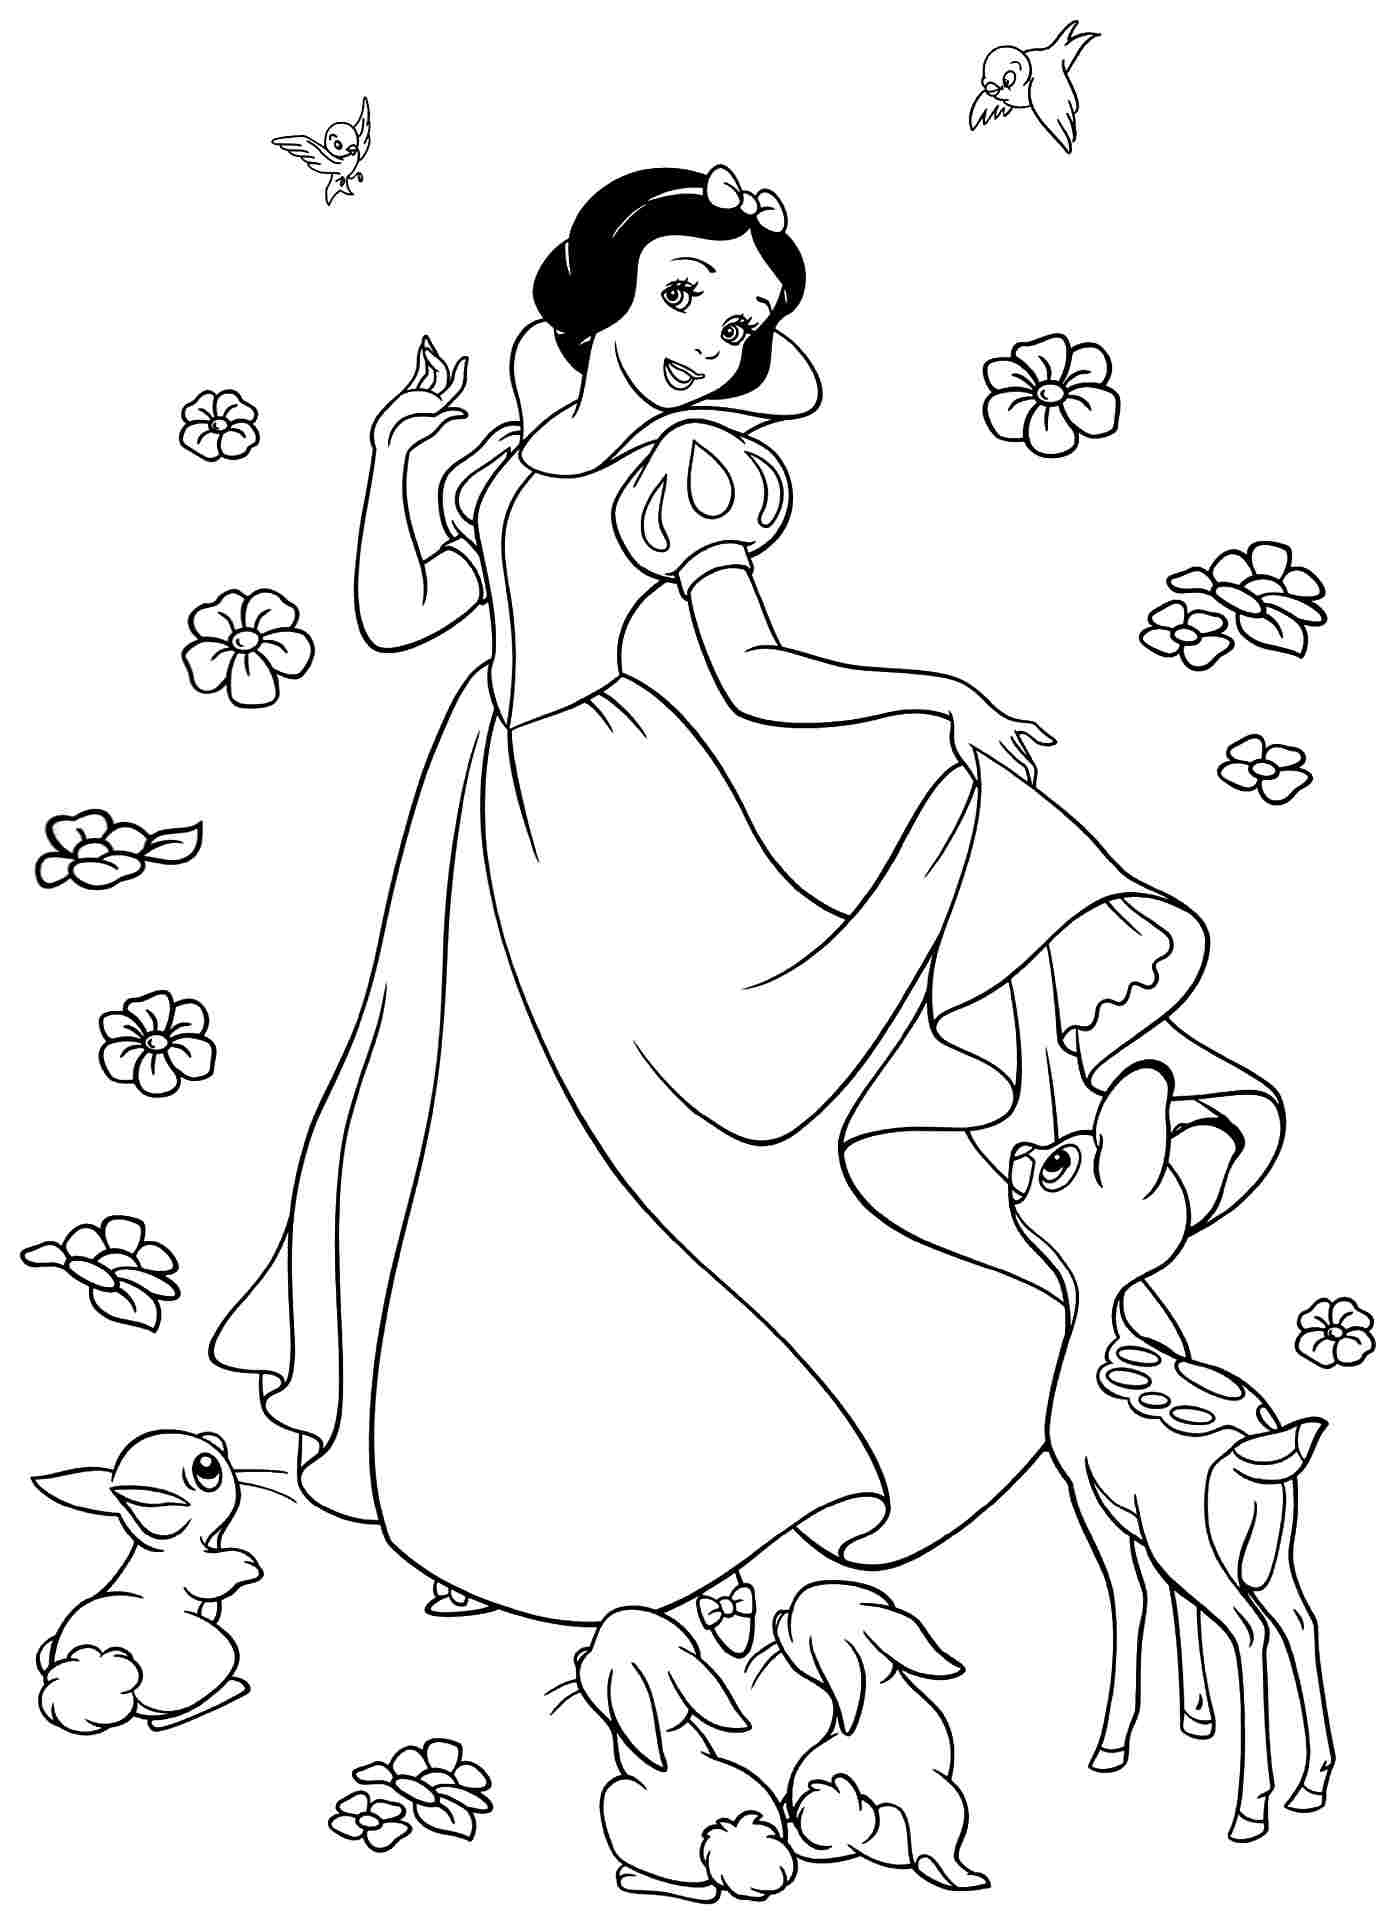 Snow White Coloring Pages To Download And Print For Free